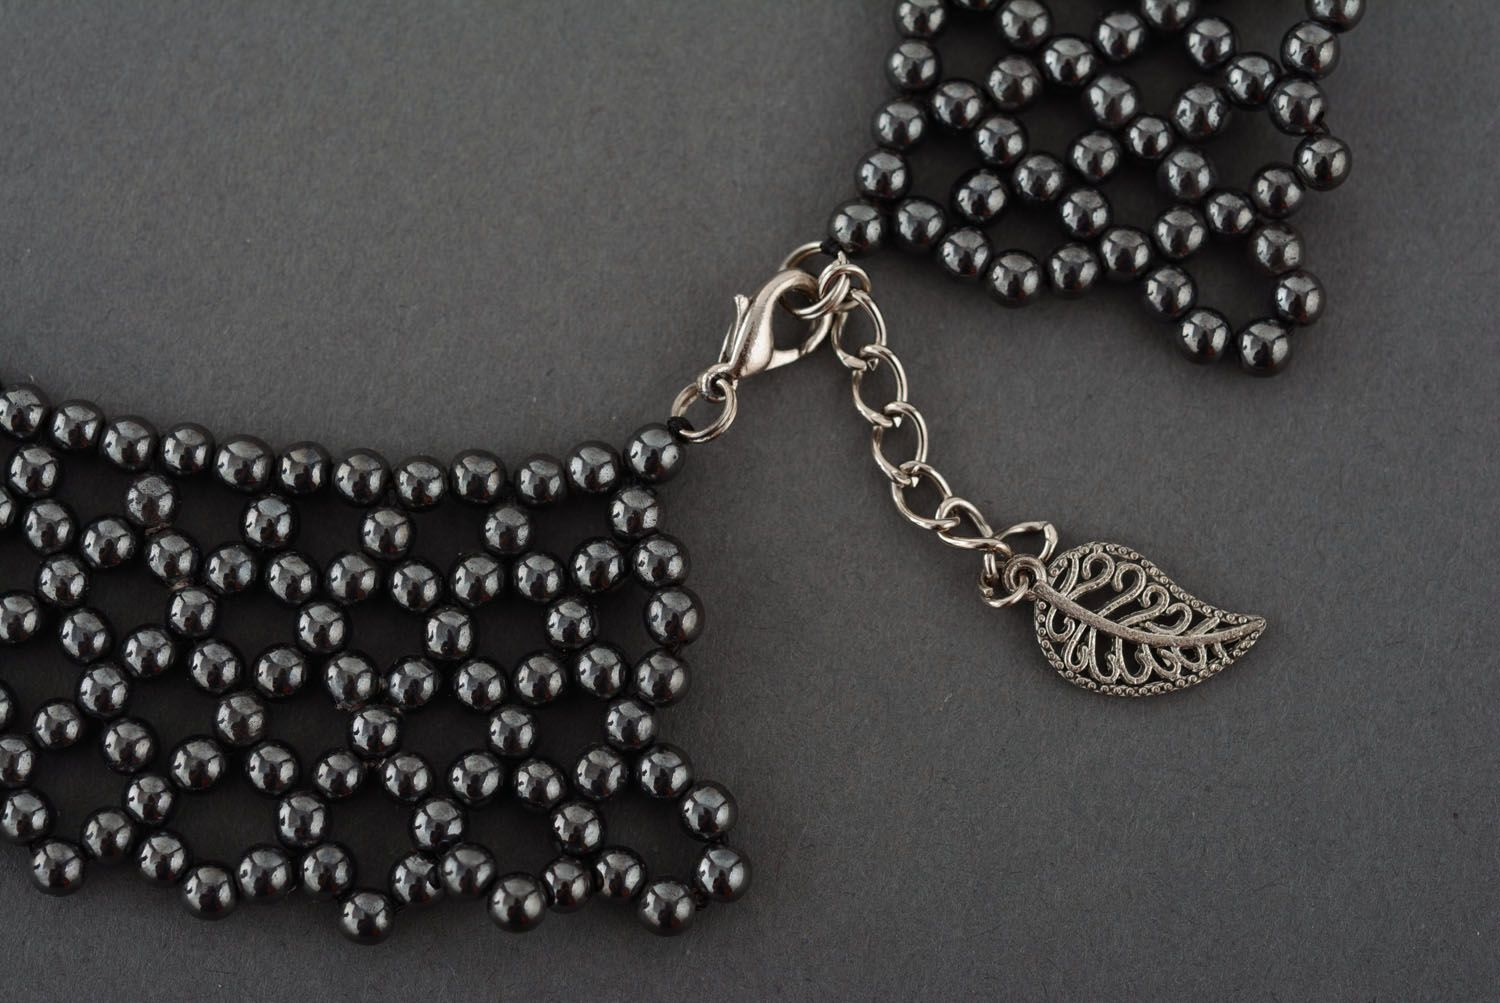 Necklace made of hematite beads photo 3